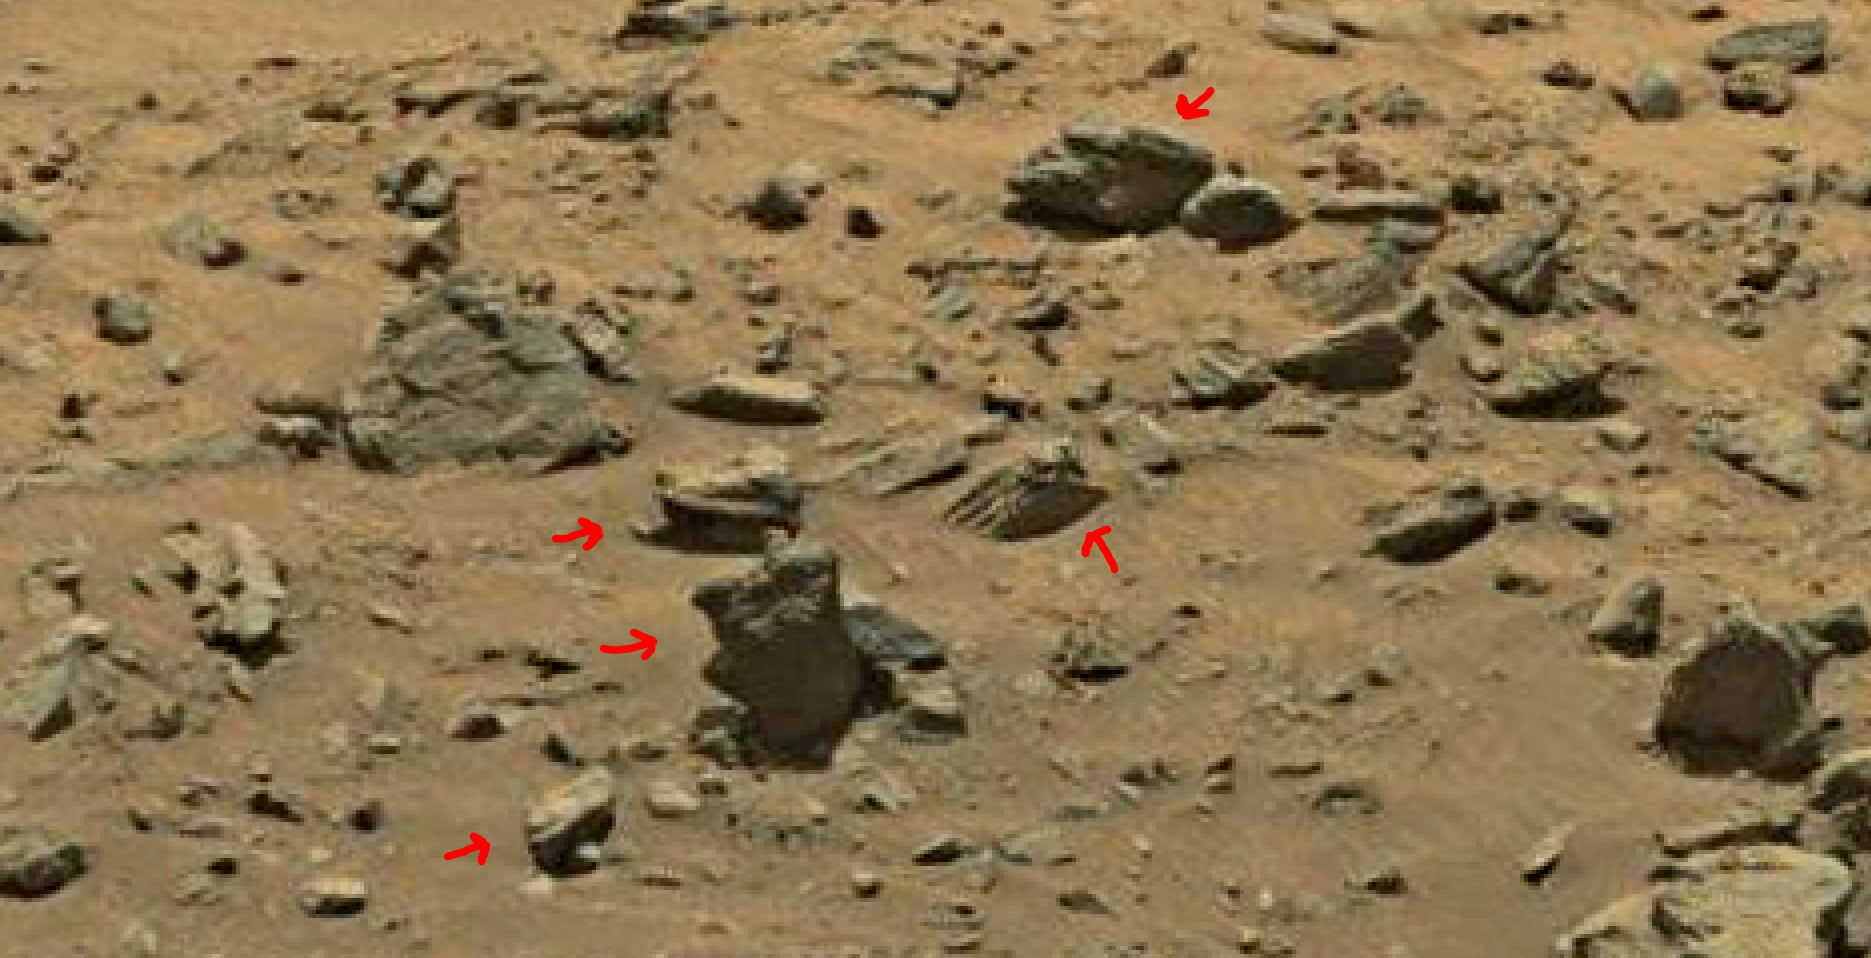 mars sol 1399 anomaly artifacts 1 was life on mars